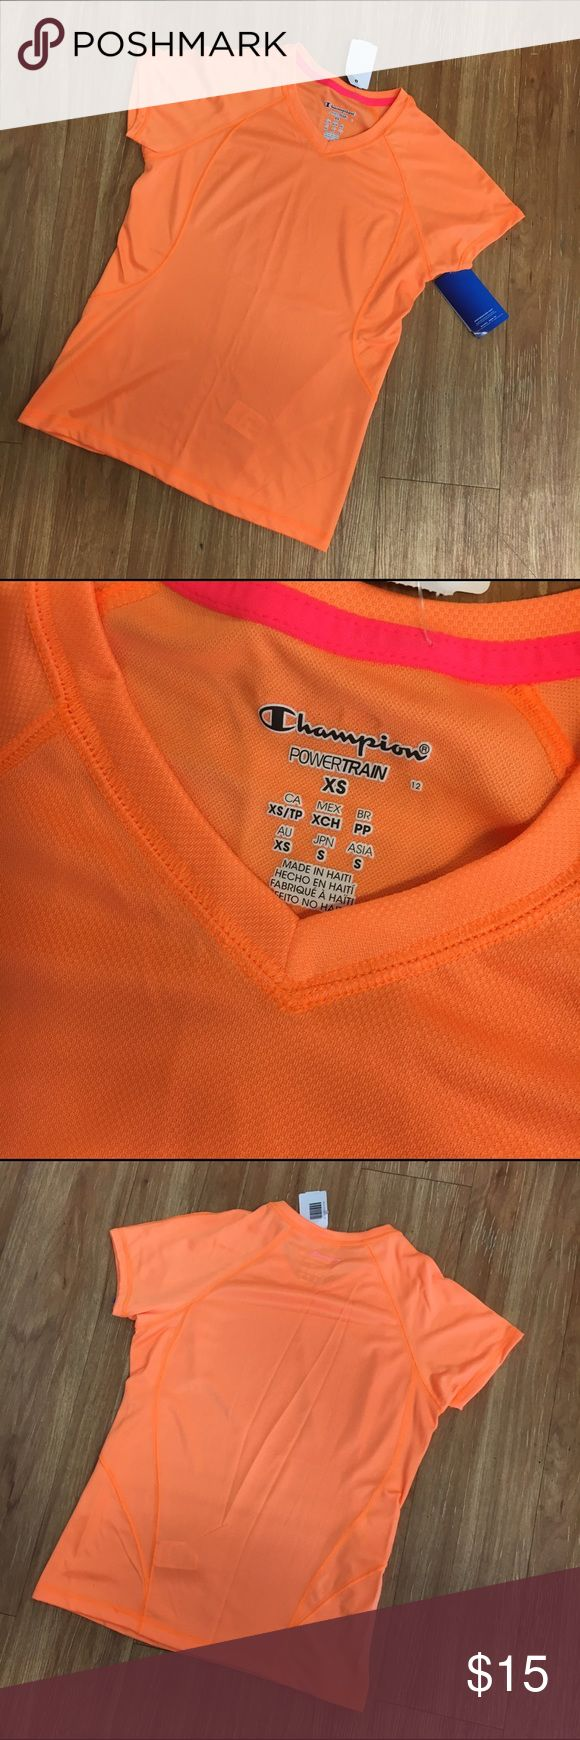 Champion Powertrain NEW NWT Orange Shirt Top XS Champion Powertrain NEW NWT Orange Shirt Top XS  New with tags.  Womens size XS.  V neck.  Lightweight.  With DoubleDry technology for a cooler, drier workout.  #new #nwt #orange #shirt #top #powertrain #champion #athleisure #workout Champion Tops Tees - Short Sleeve